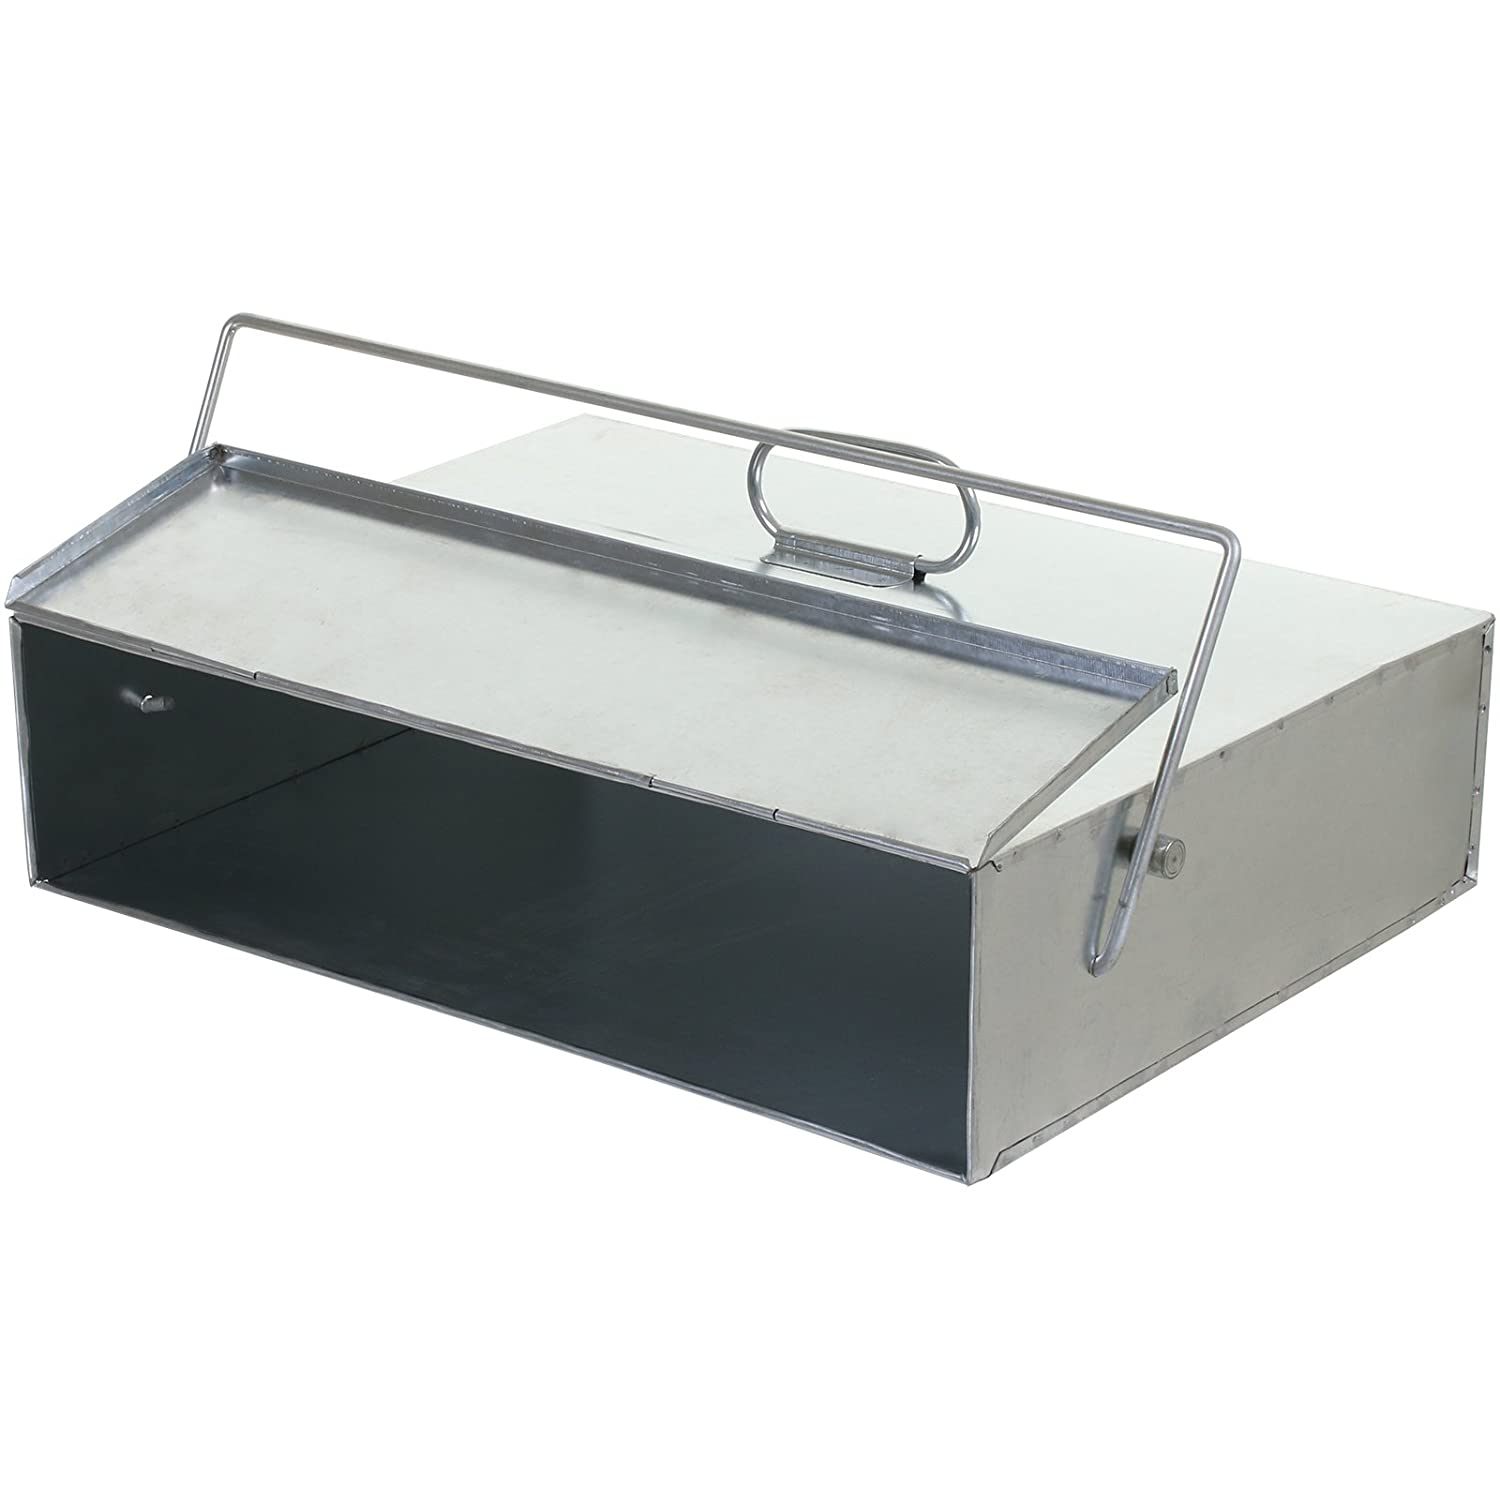 marko fireside ash carrier galvanised metal tidy box container